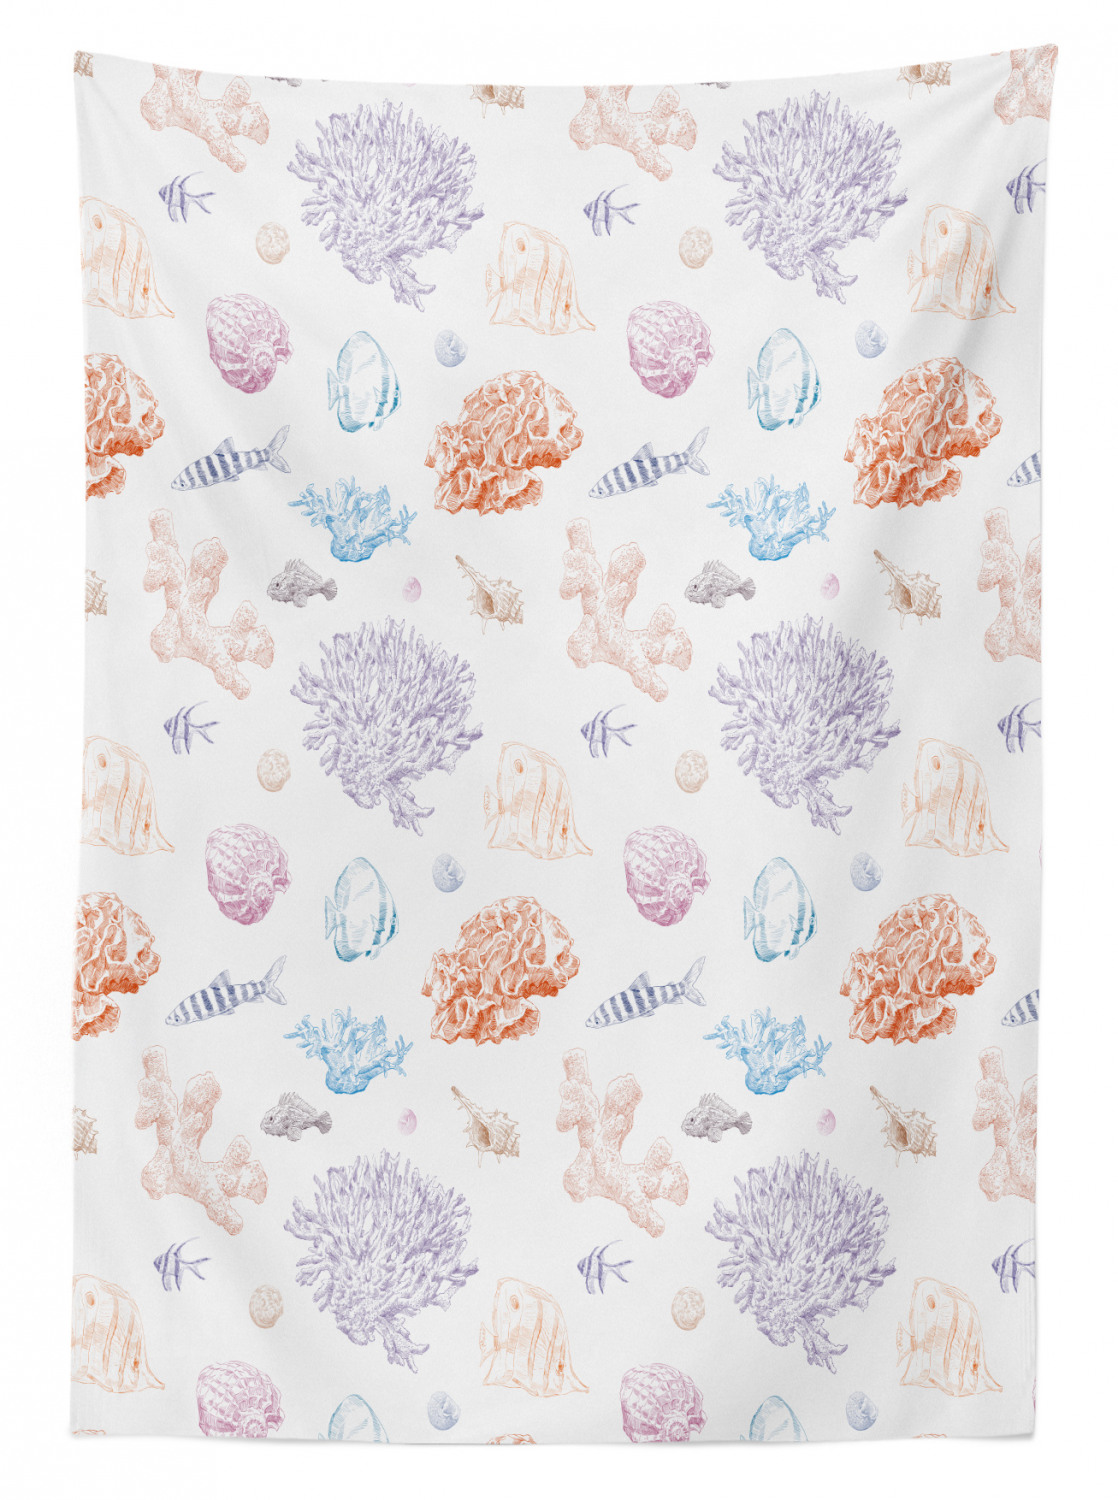 thumbnail 20 - Ambesonne Marine Pattern Tablecloth Table Cover for Dining Room Kitchen